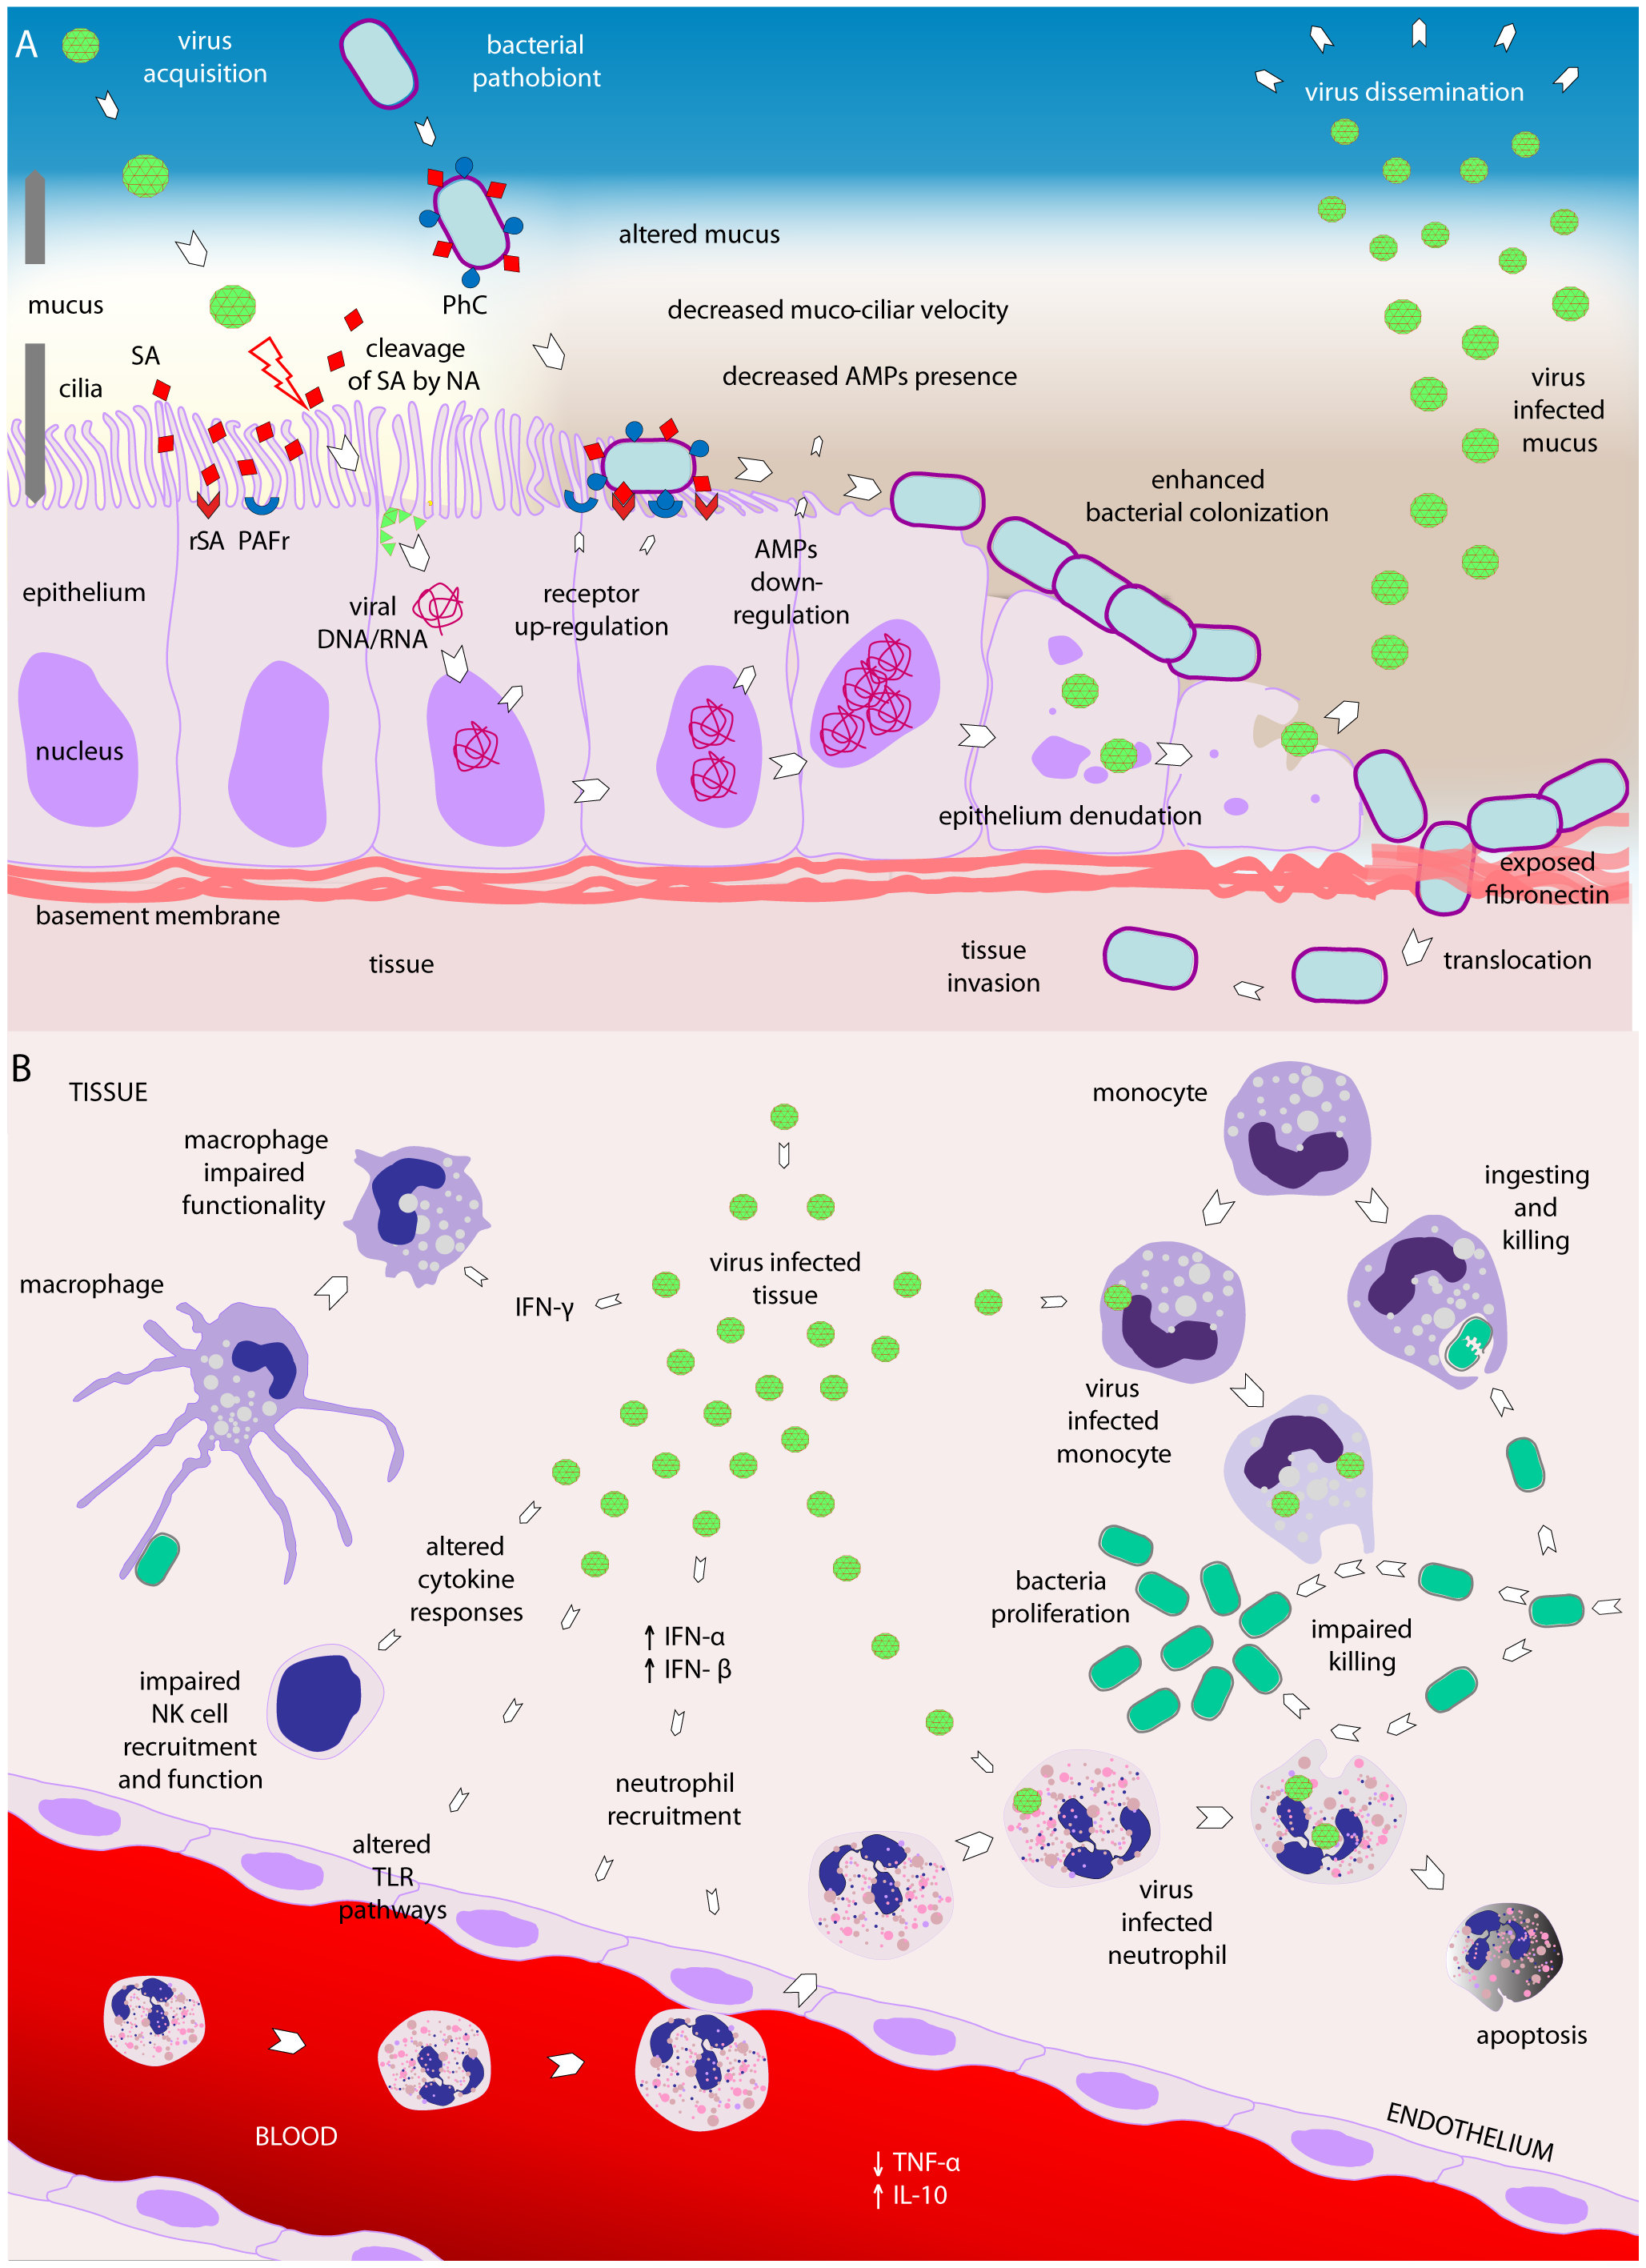 Viral–bacterial interactions.